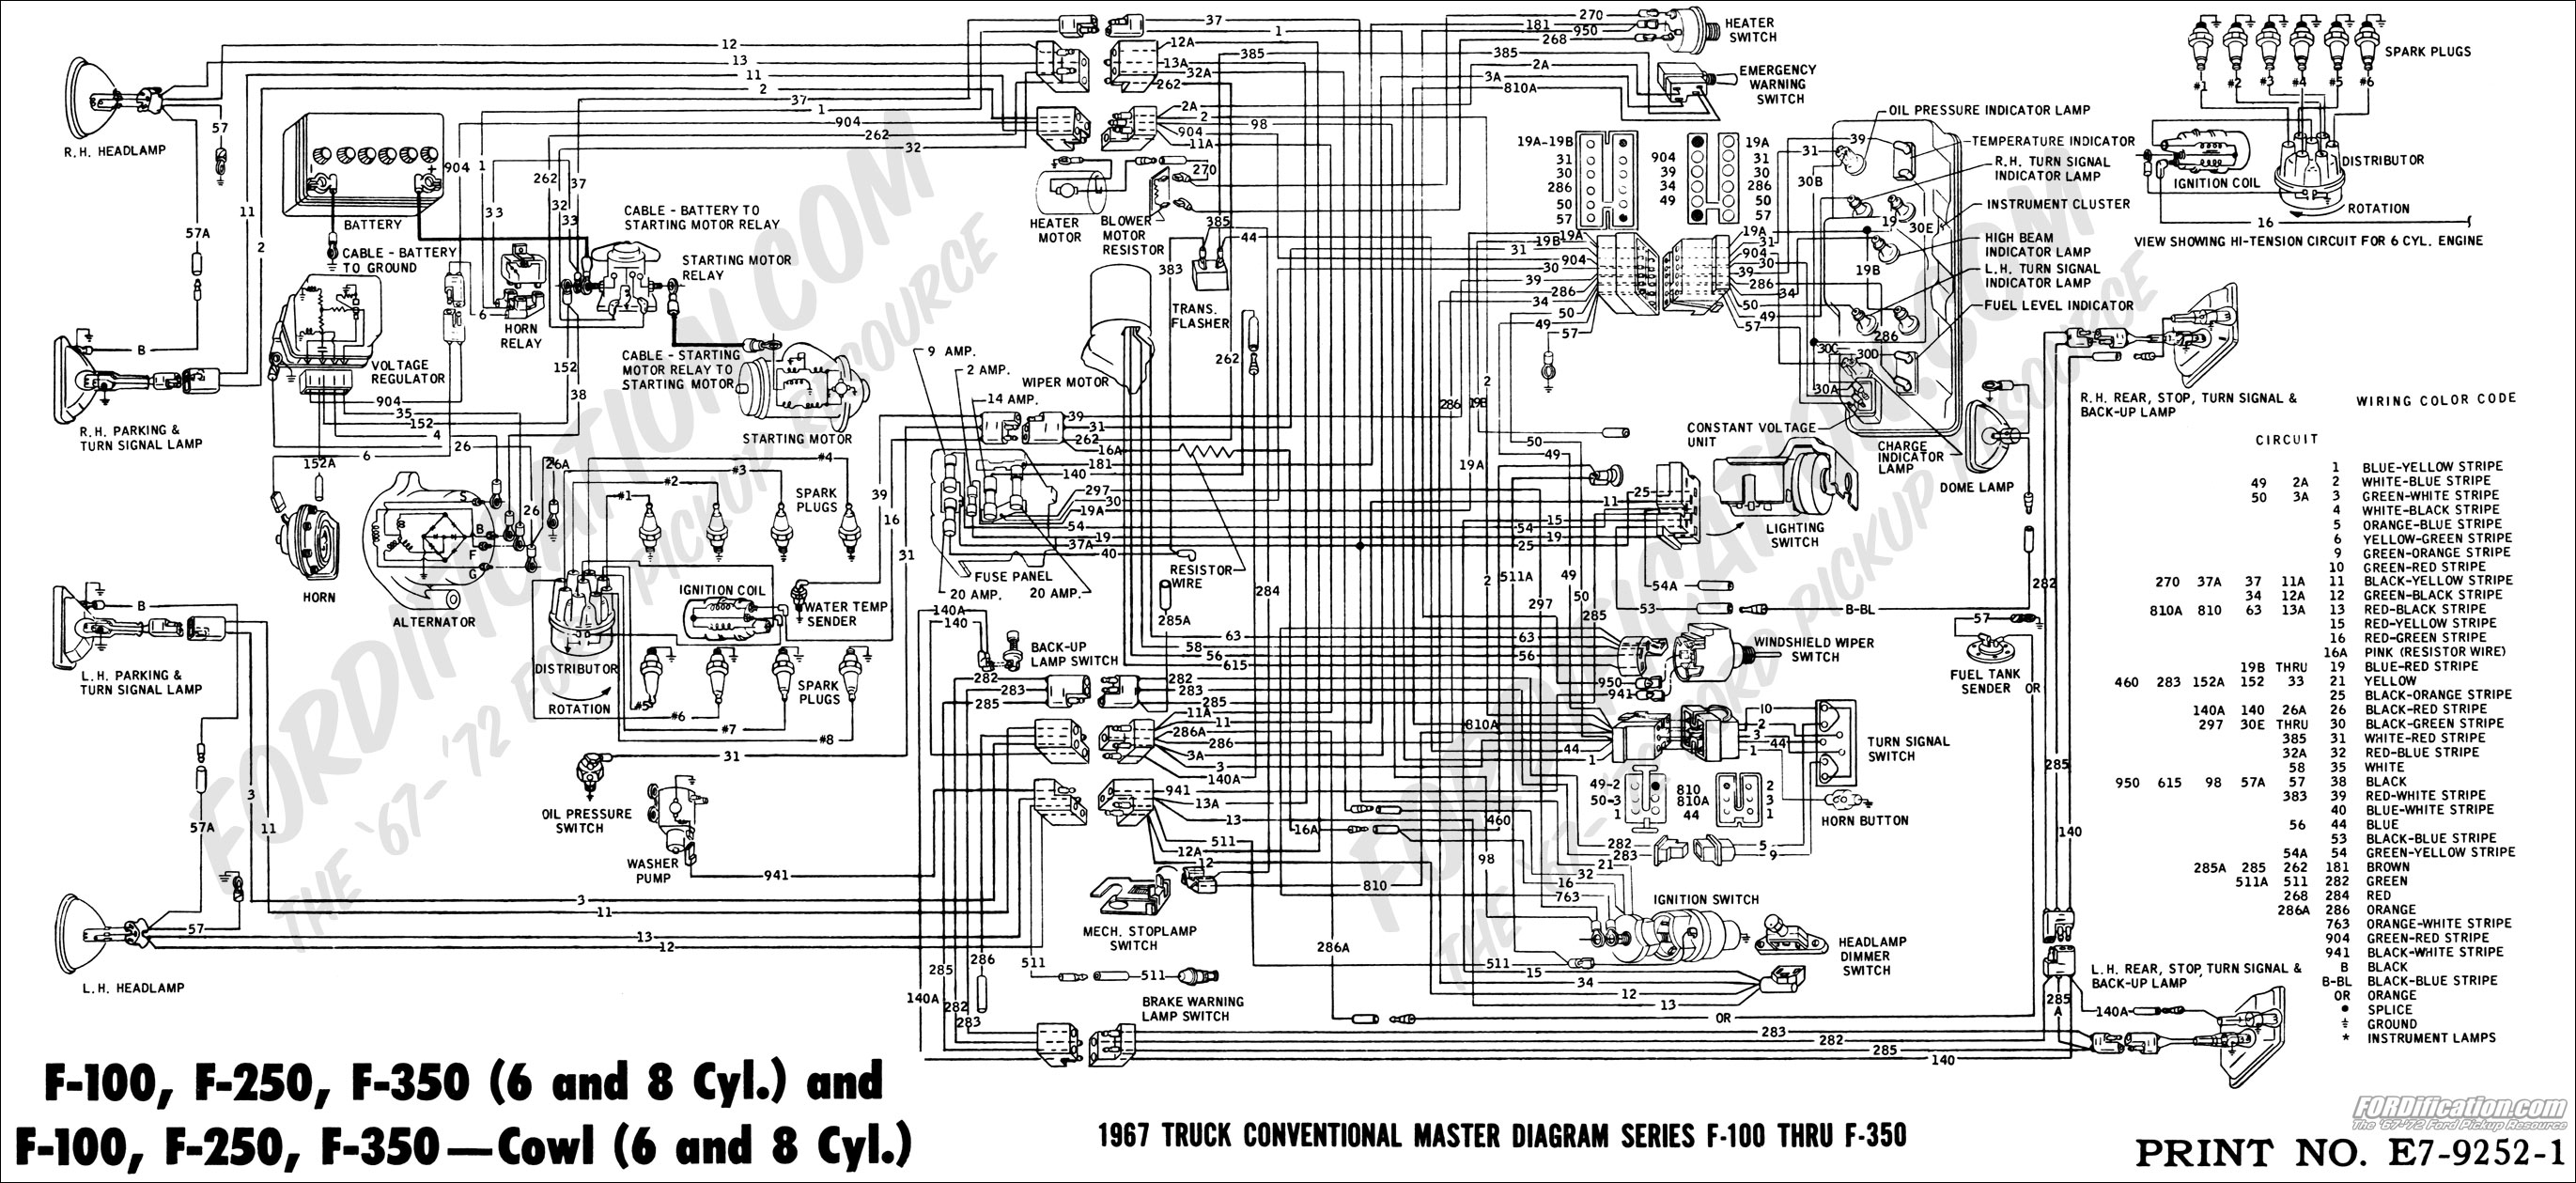 67masterdiagram ford truck technical drawings and schematics section h wiring ford wiring diagrams at bayanpartner.co